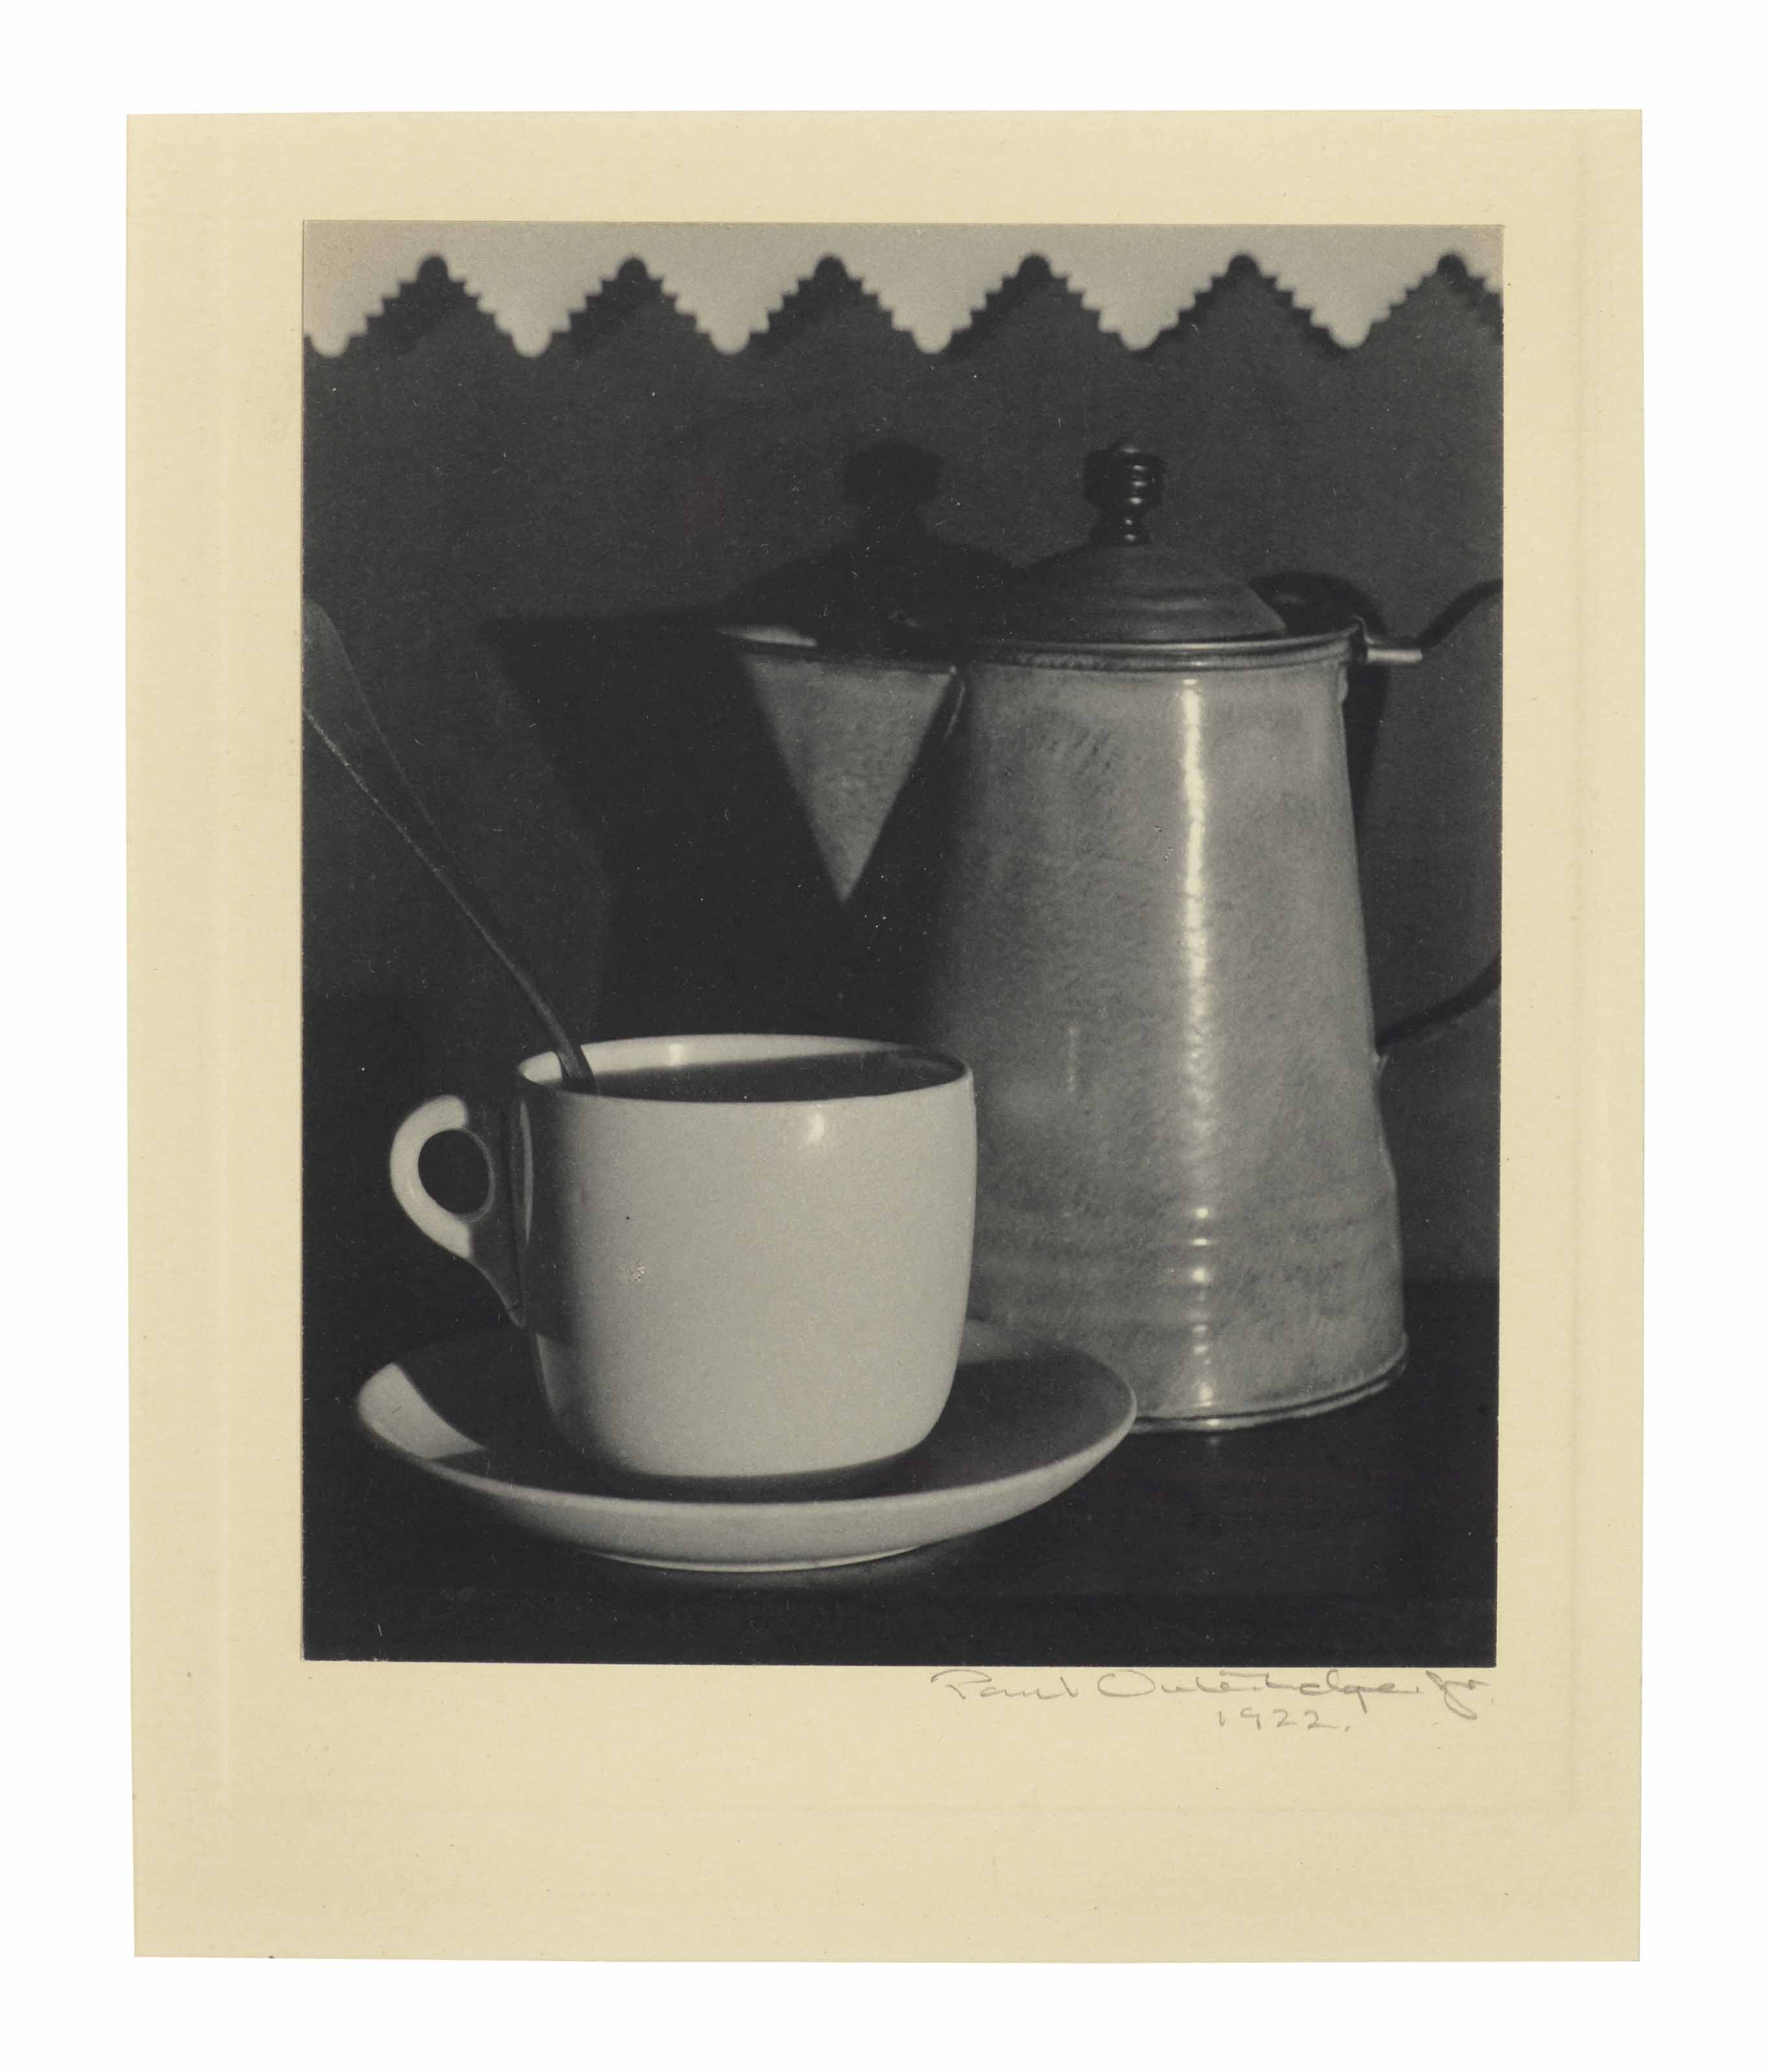 Coffee Pot and Cup, 1922